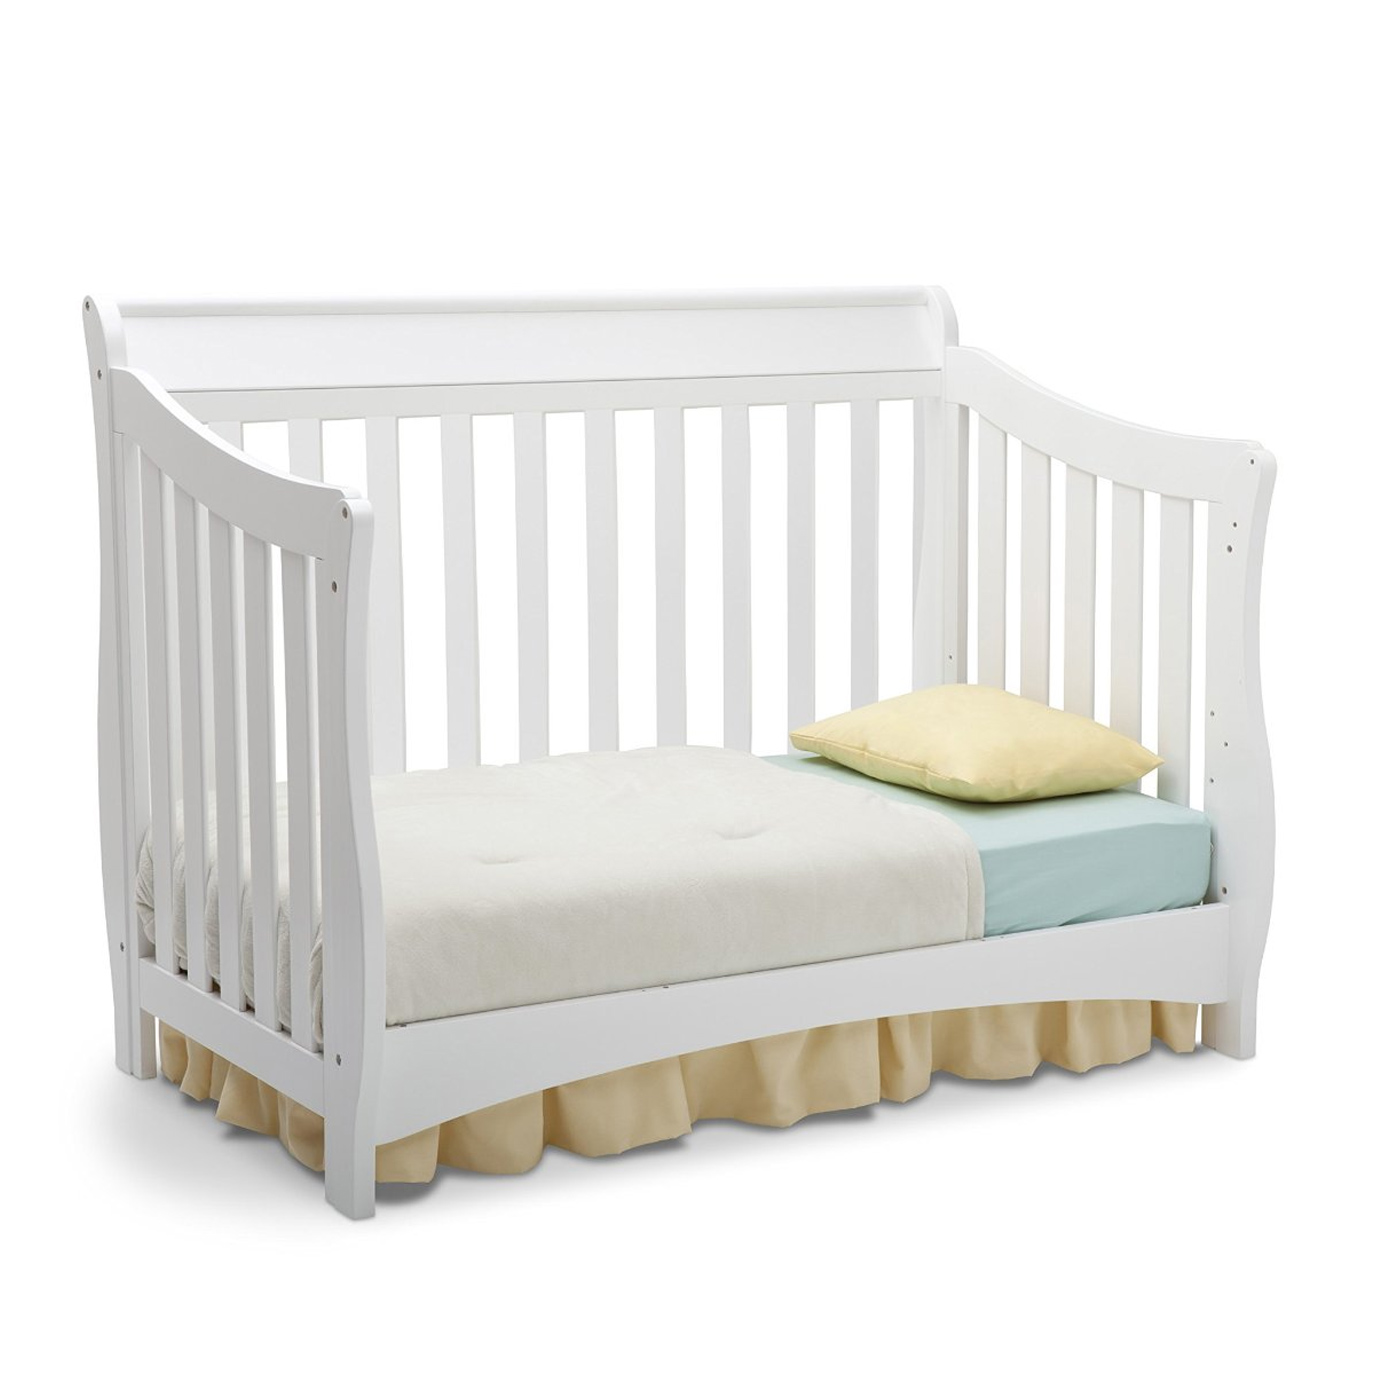 Delta Bentley 3 Piece Nursery Set Convertible Crib Changing Table And 6 Drawer Dresser In White Free Shipping